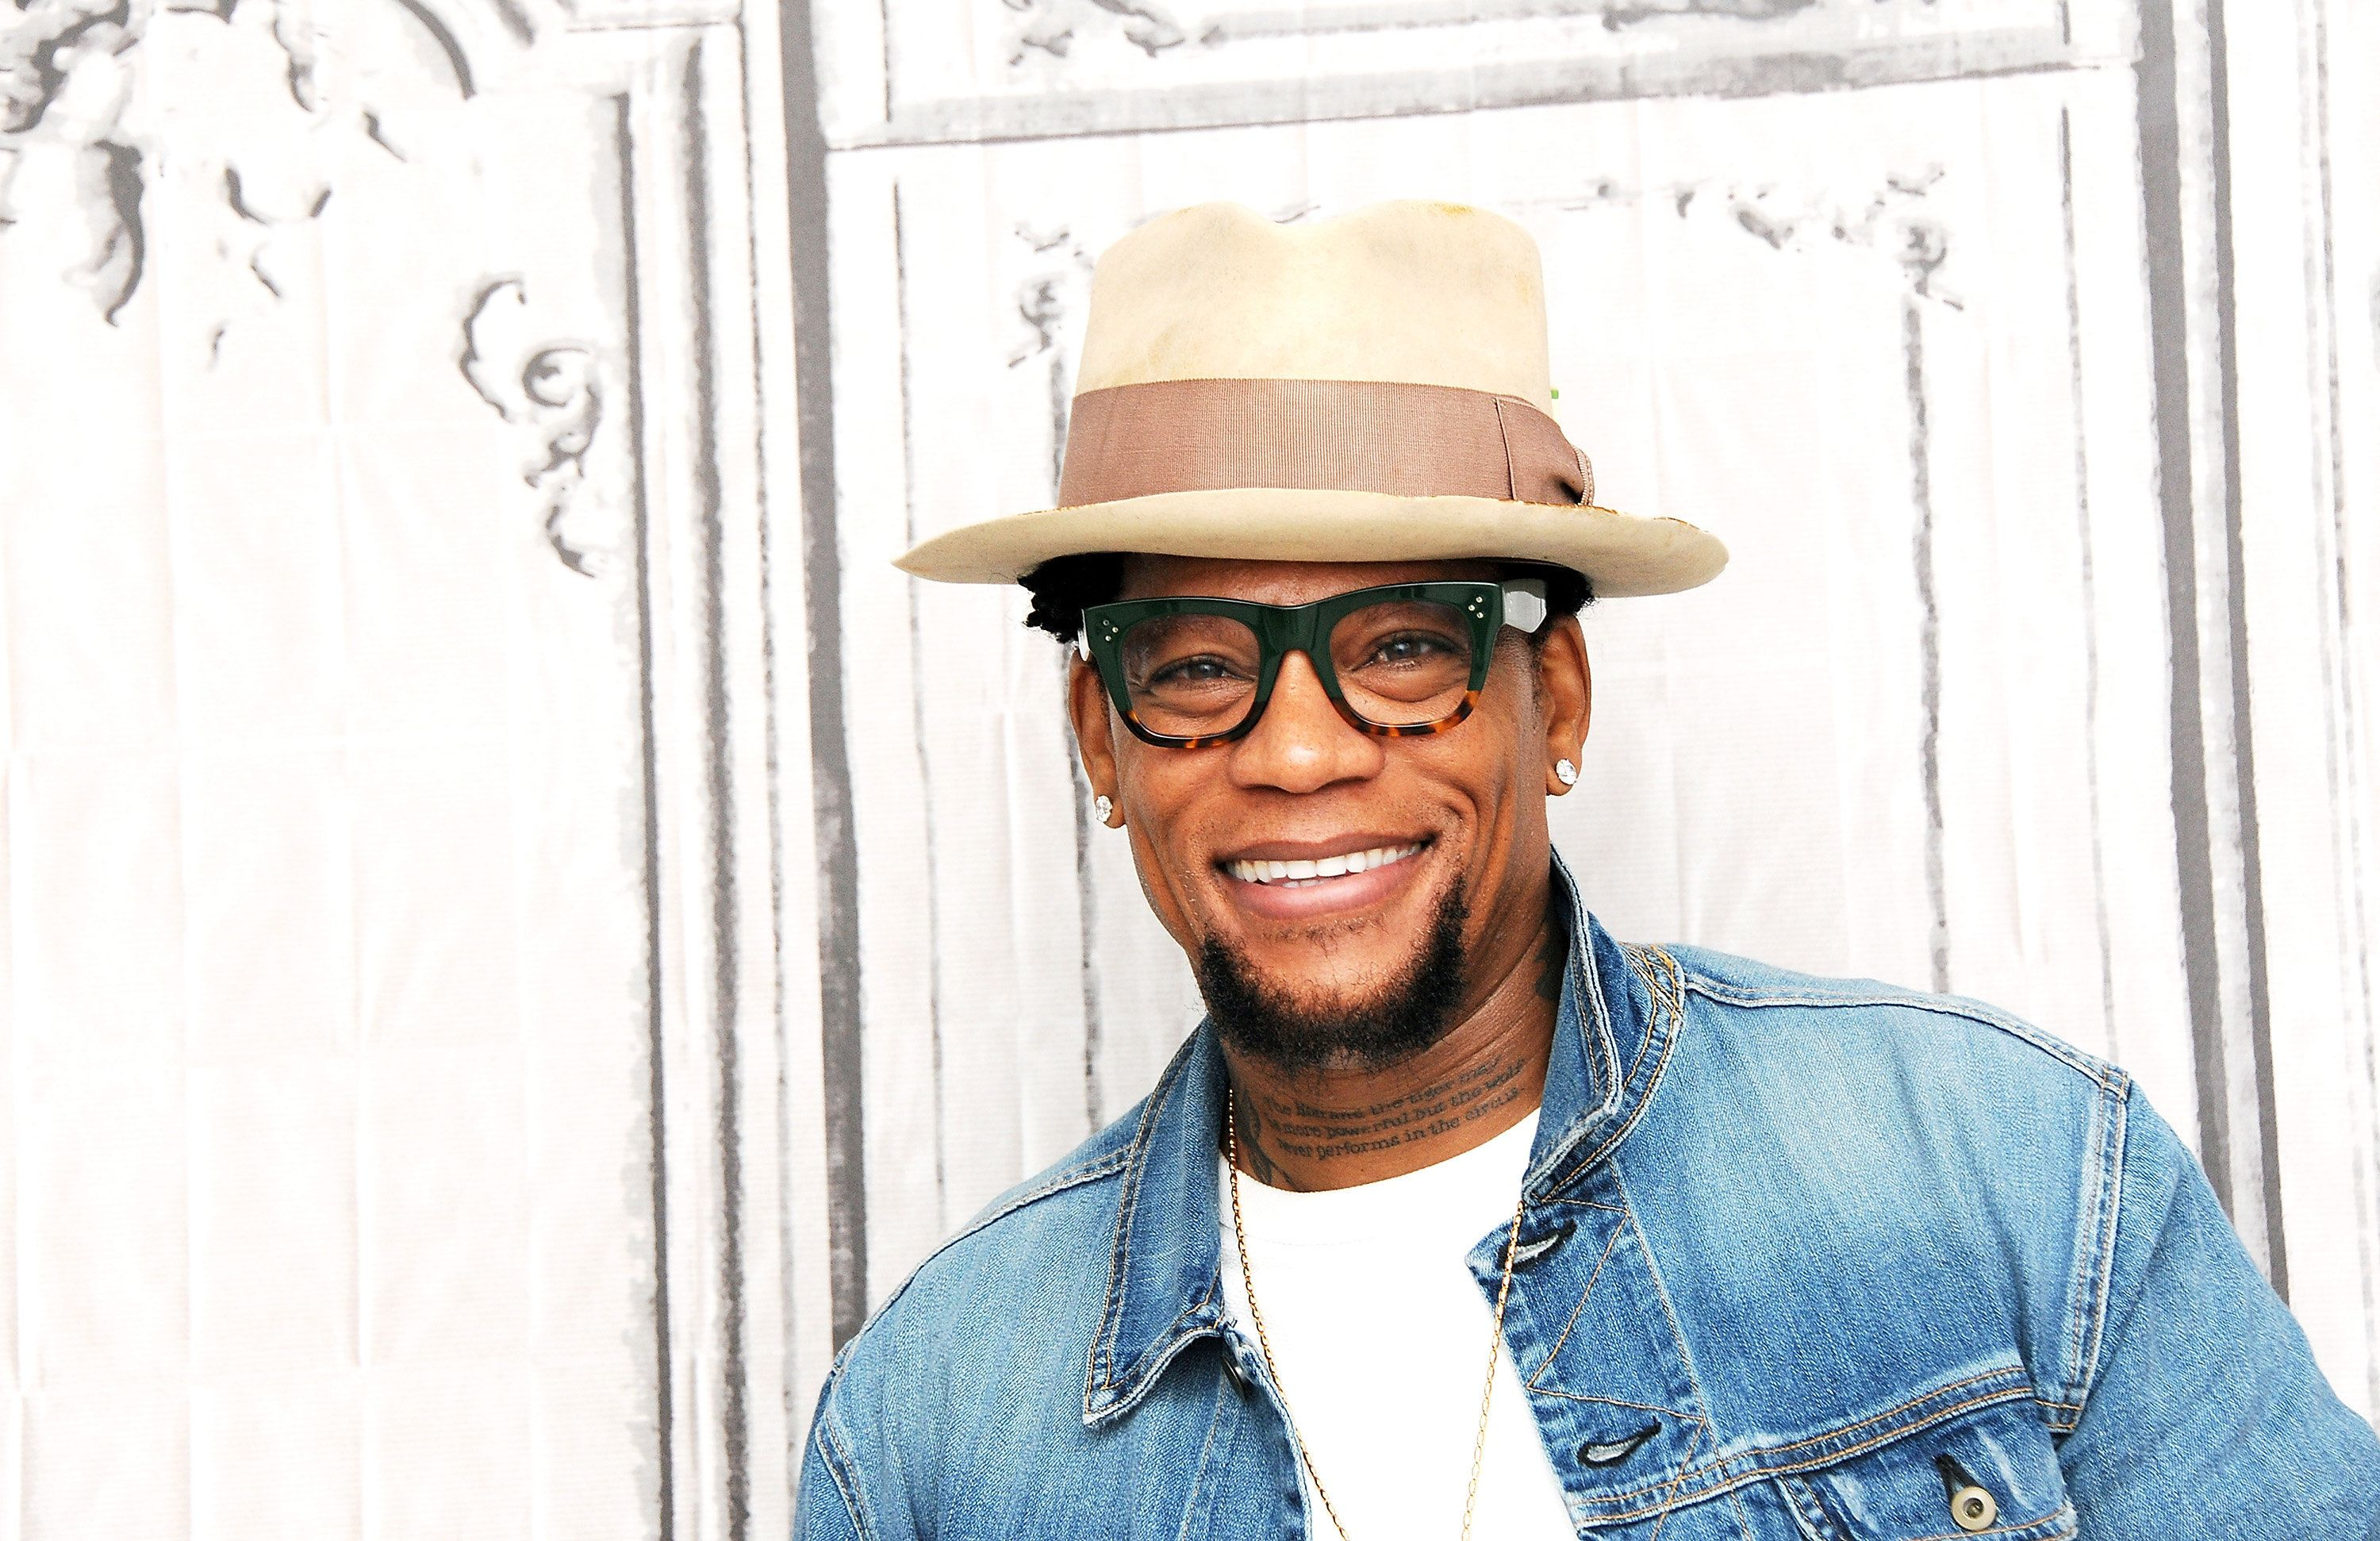 NEW YORK, NY - JUNE 07:  Actor D.L. Hughley discusses his new book, 'Black Man, White House: An Oral History of the Obama Years' during AOL Build Speaker Series at AOL Studios In New York on June 7, 2016 in New York City.  (Photo by Desiree Navarro/WireImage)